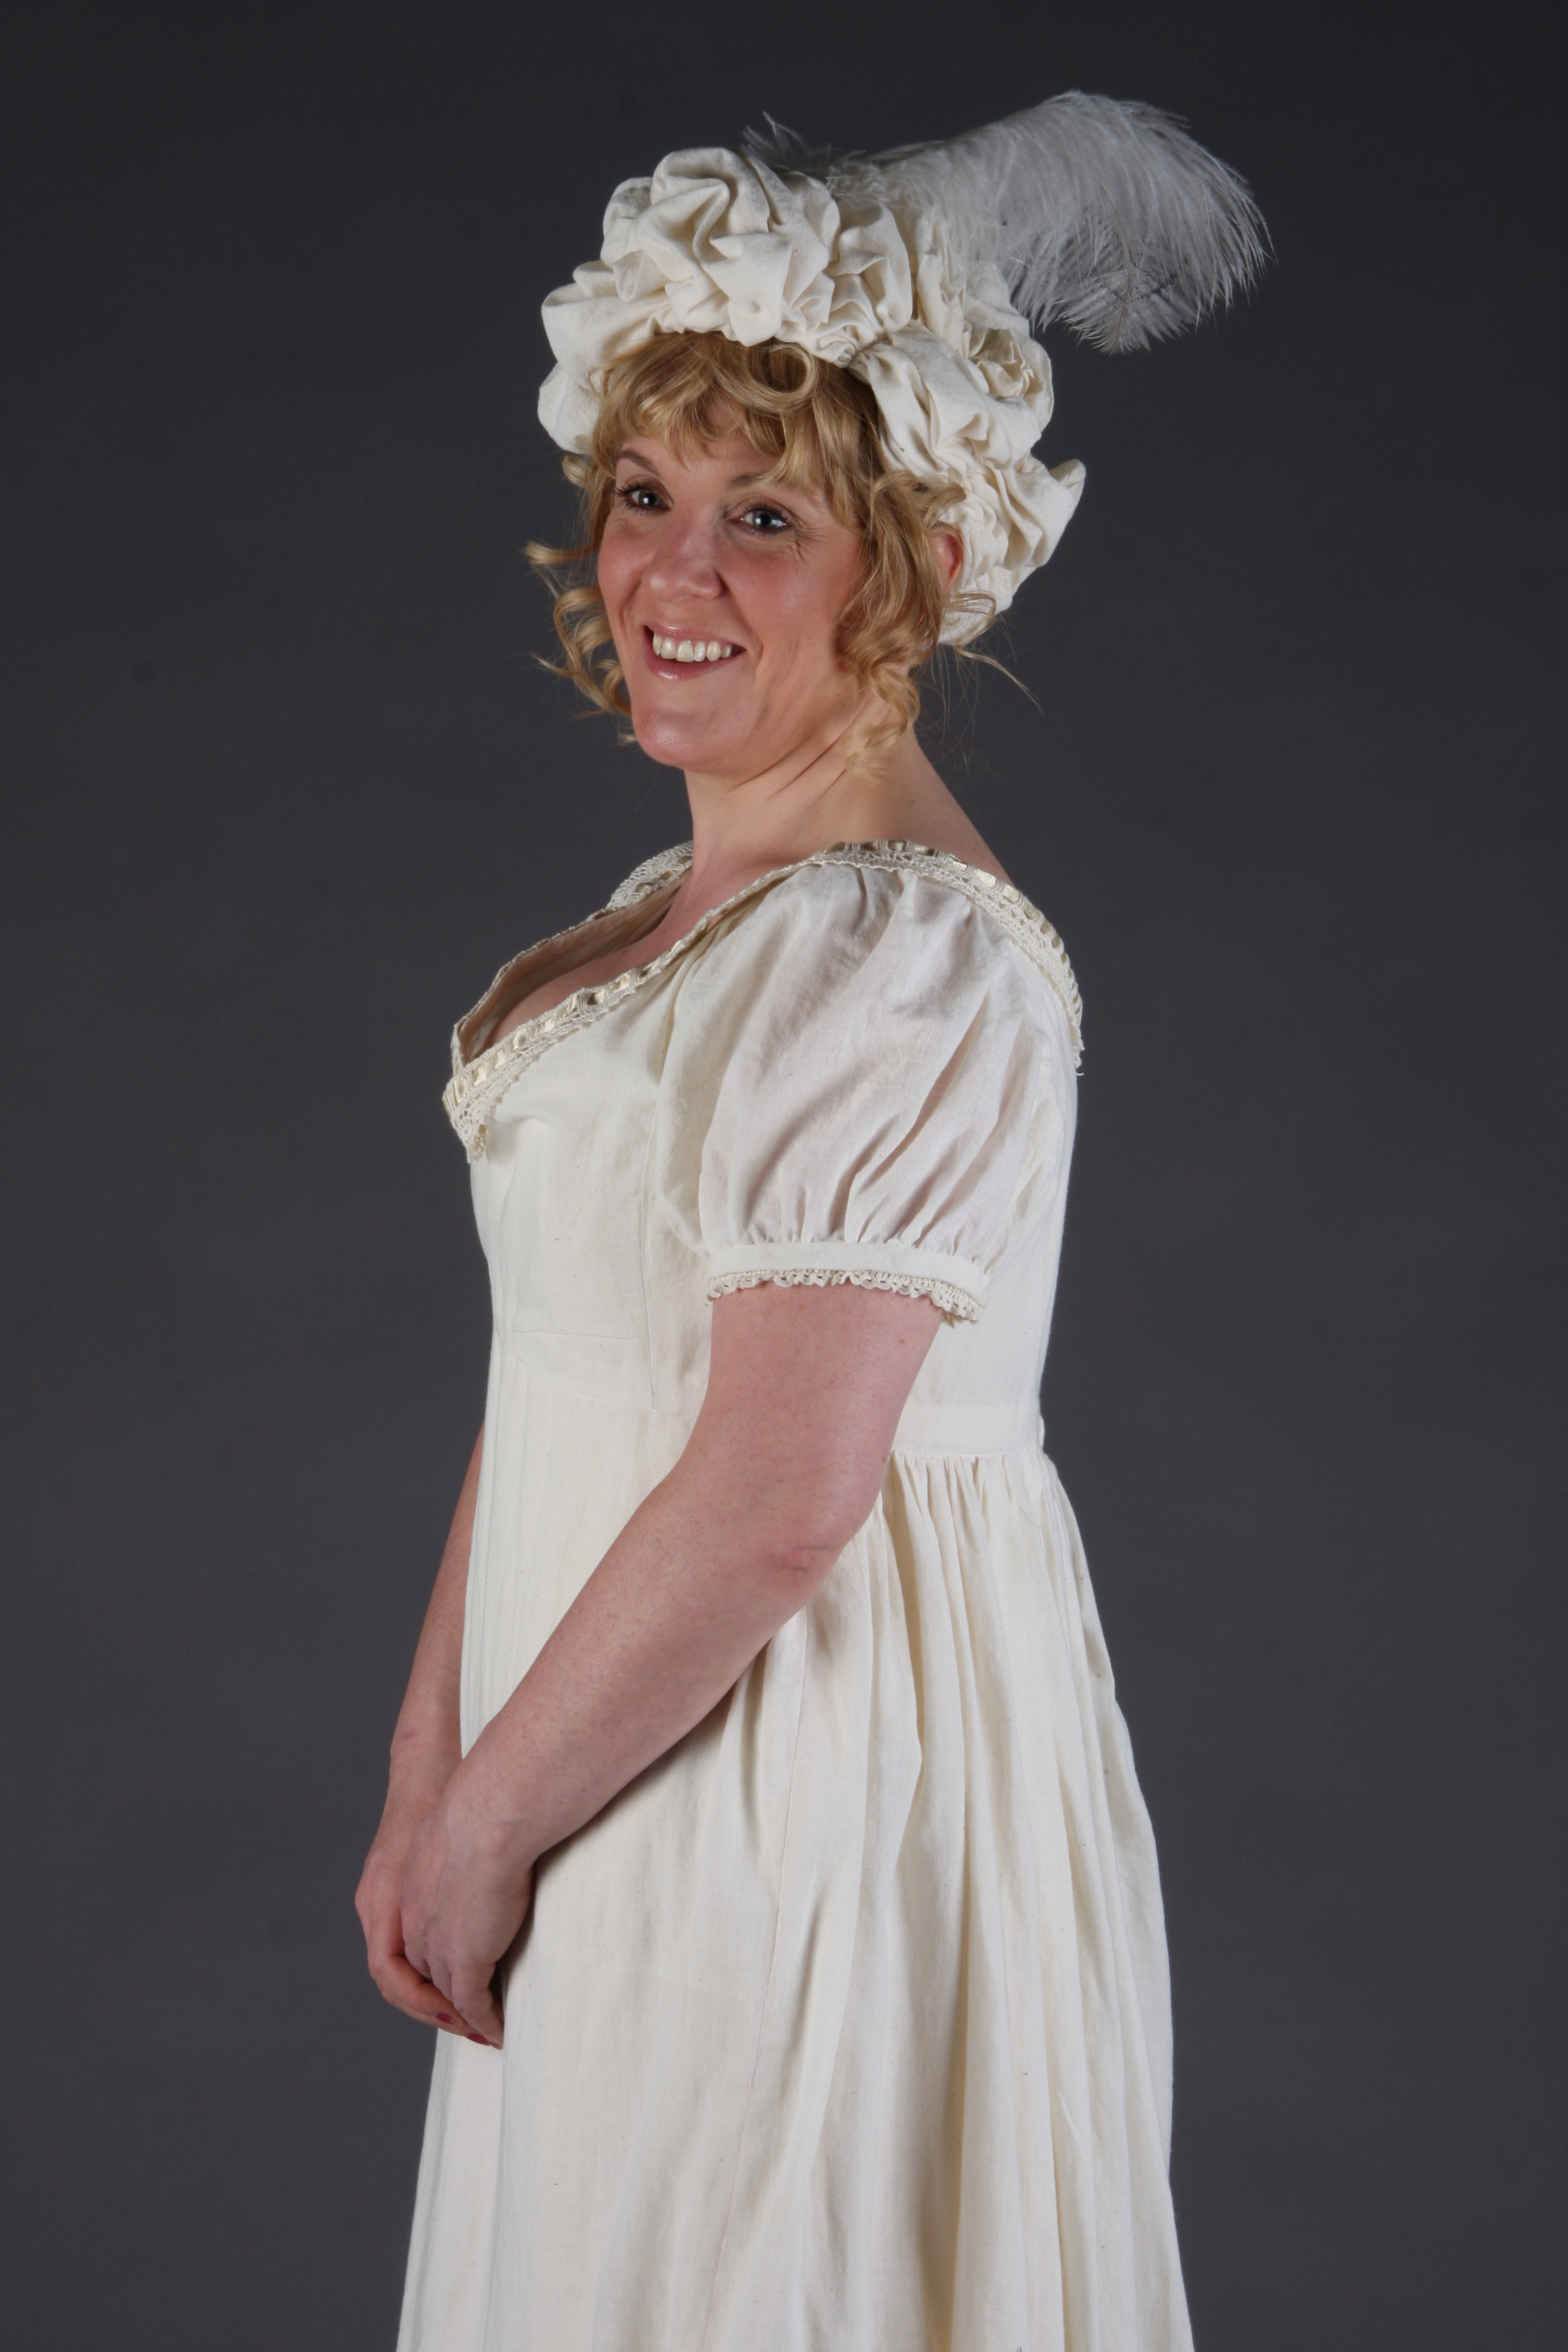 Regency outfits